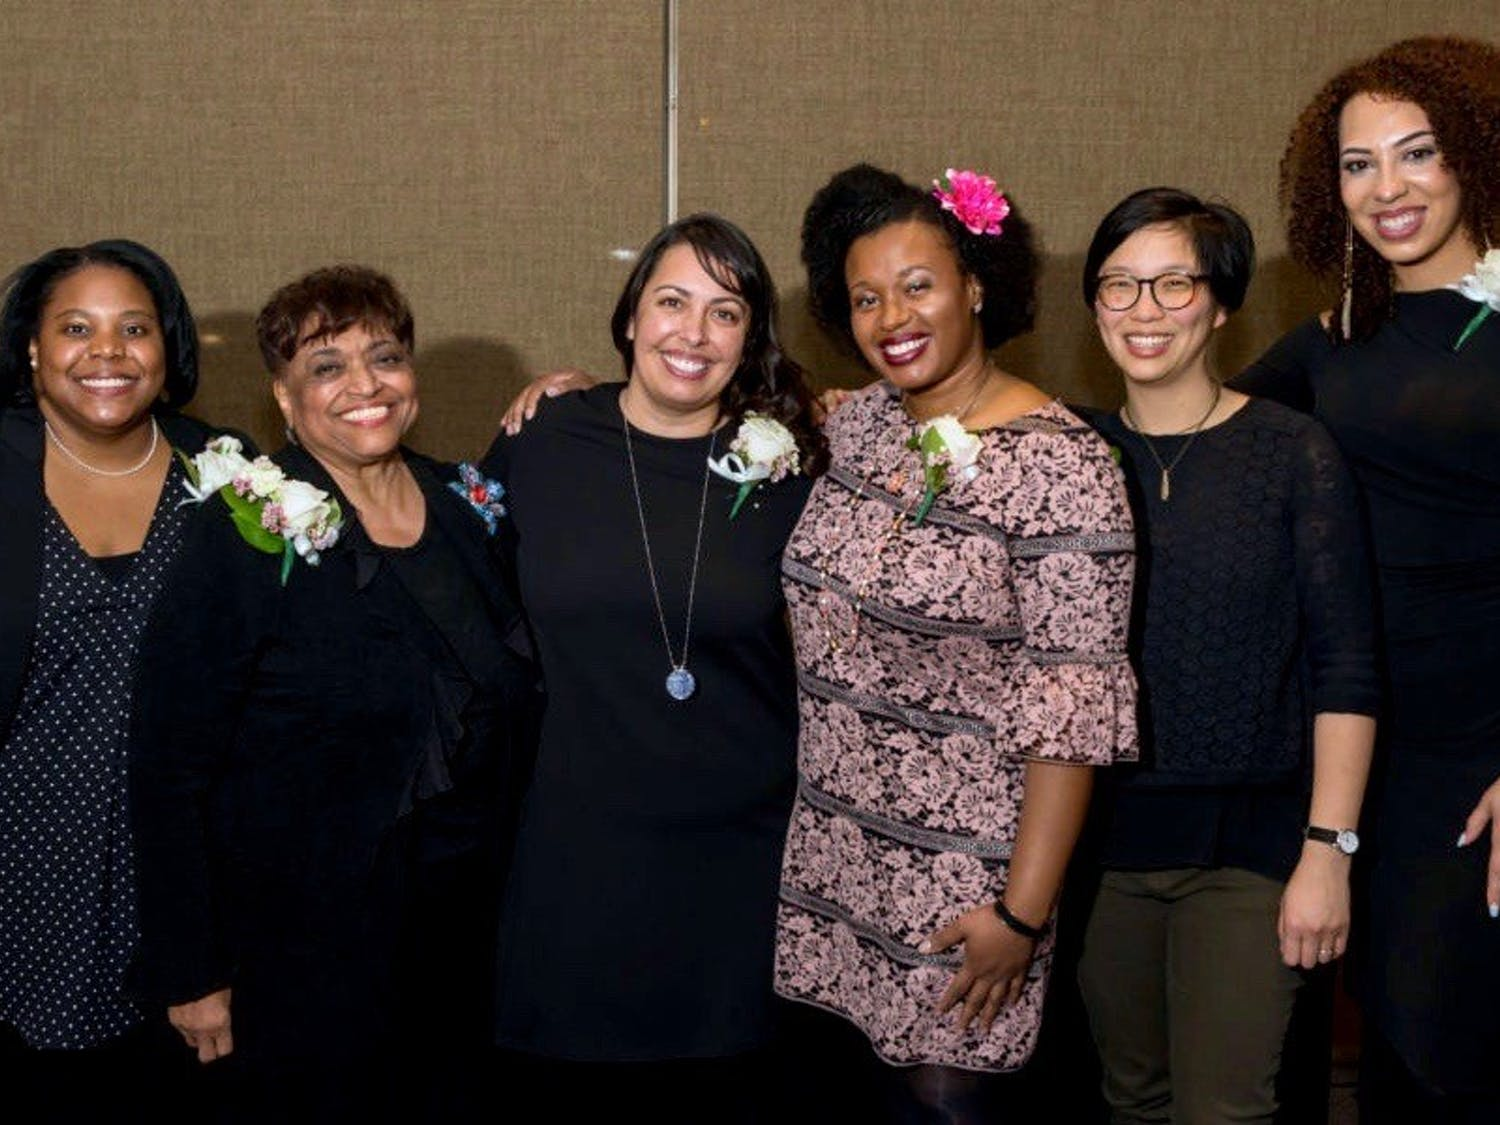 Pictured are some of last year's winners of the annual Outstanding Women of Color Awards.